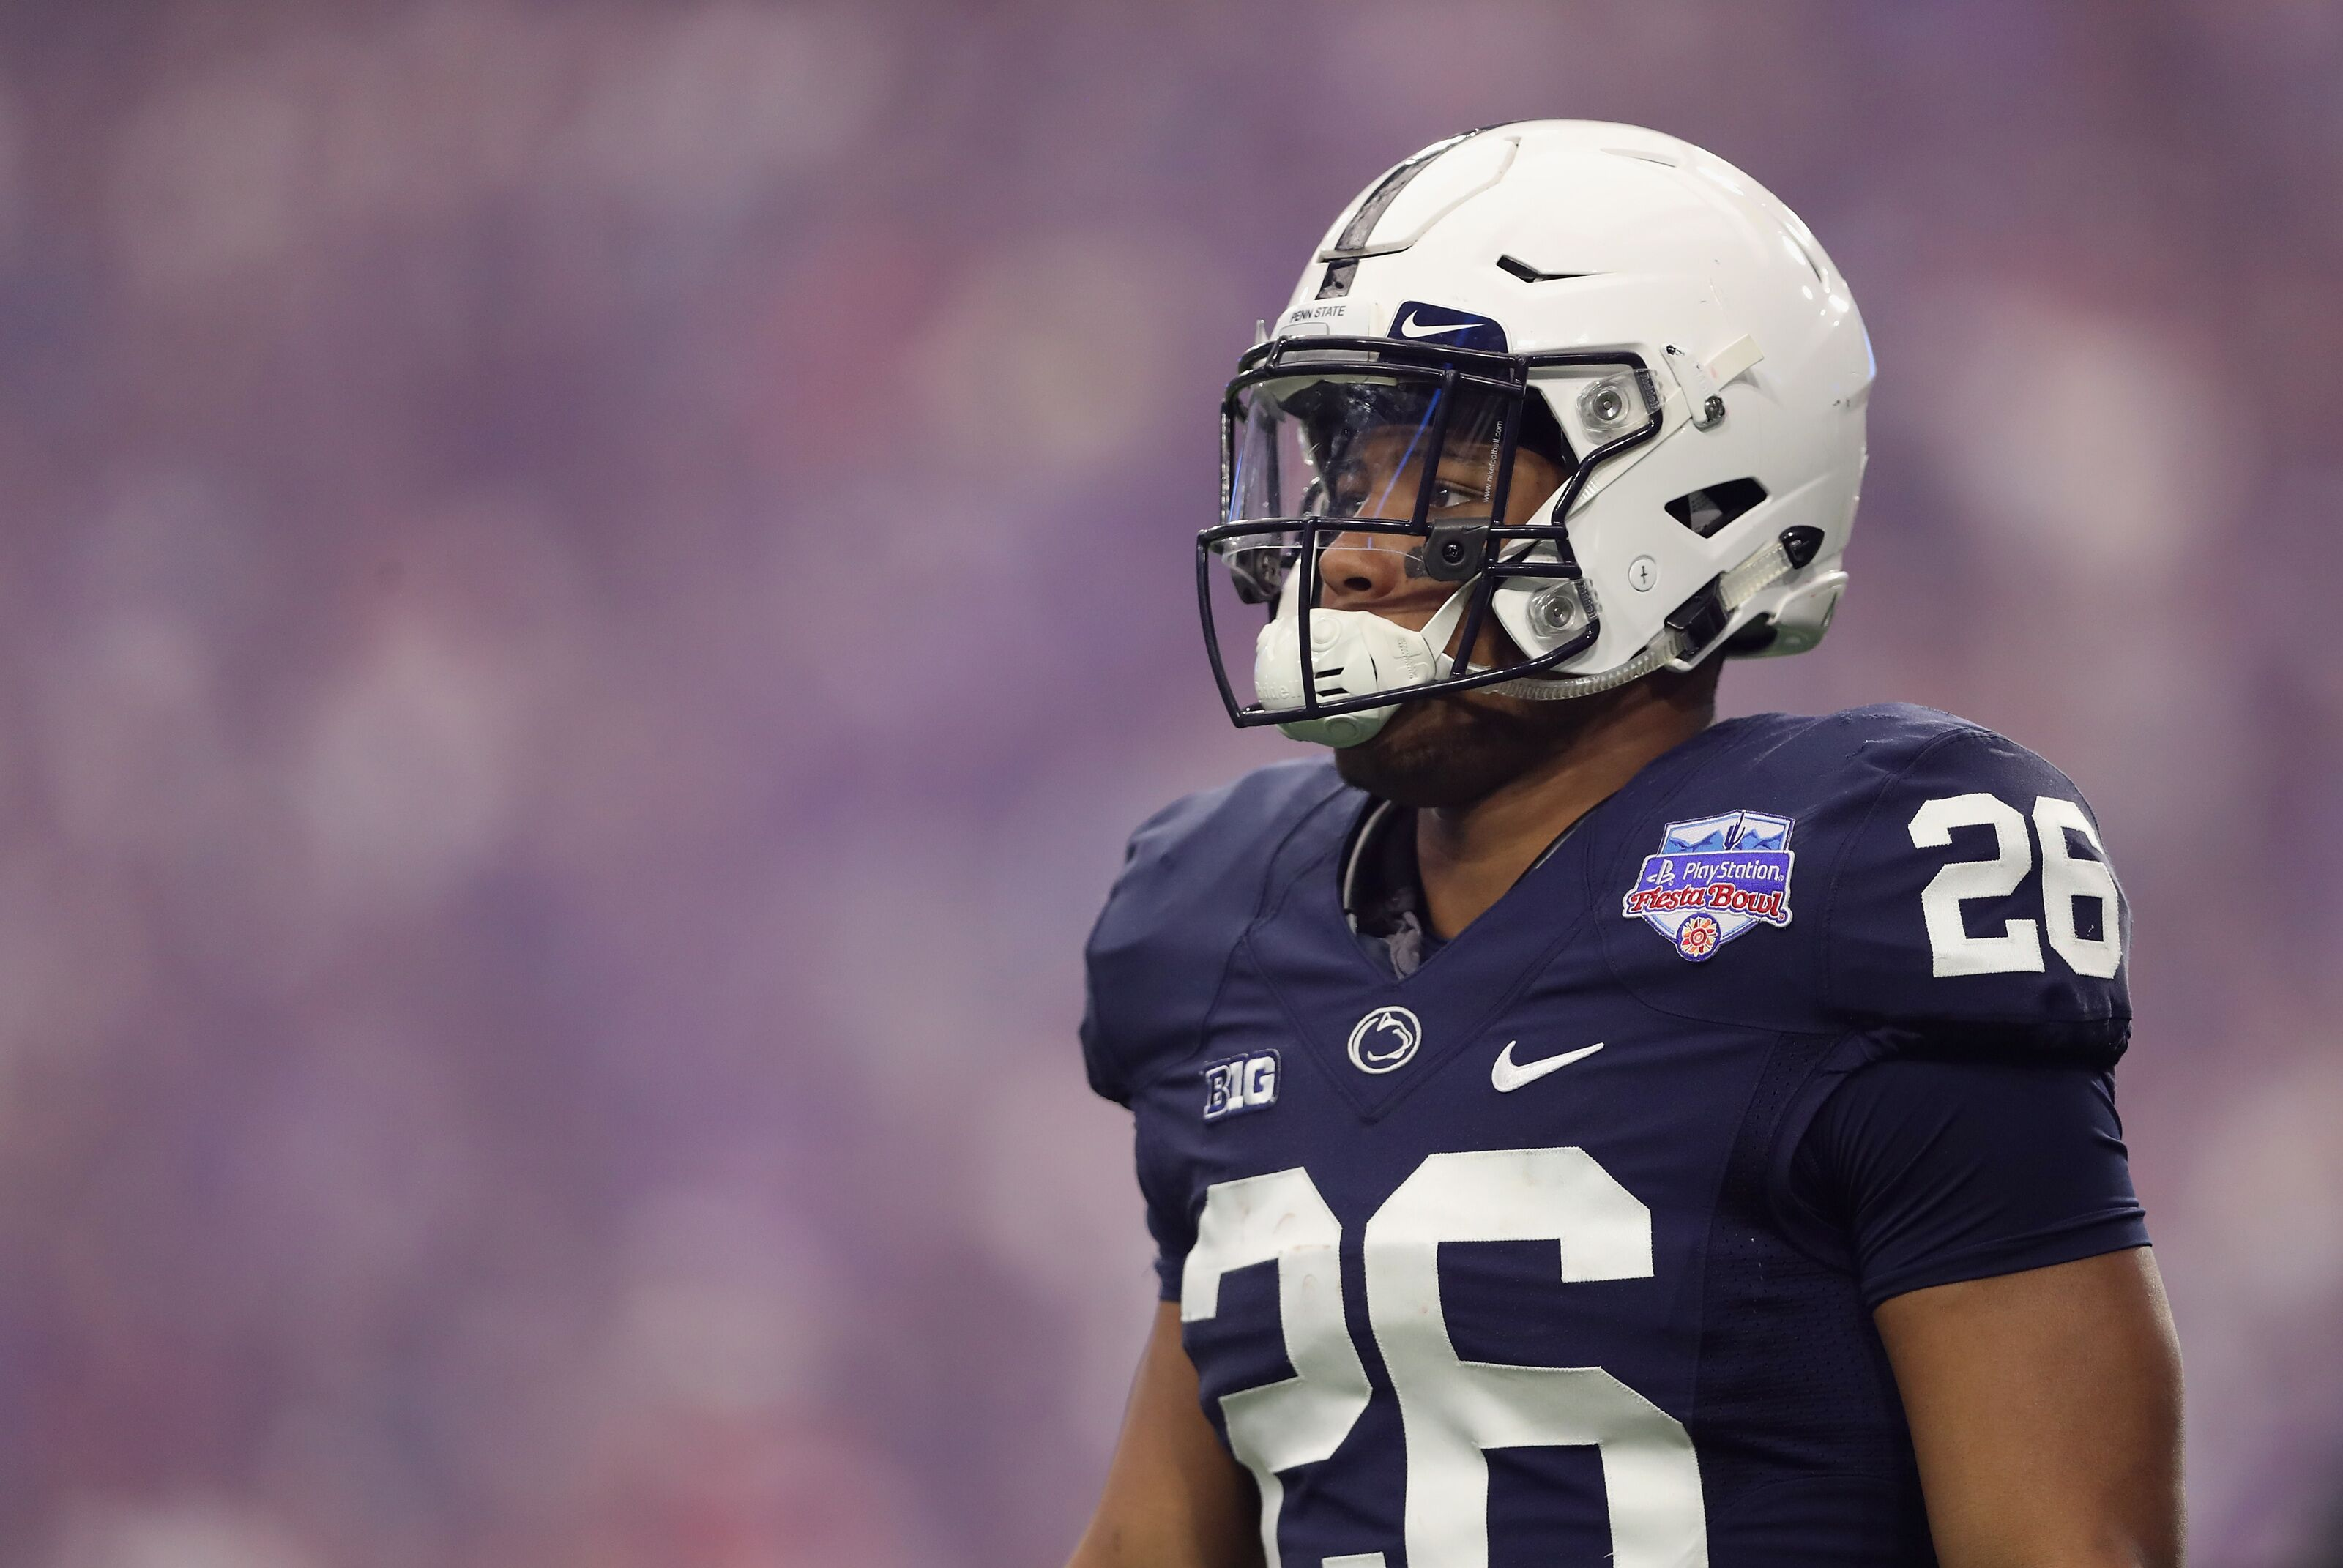 Penn State Football: Top 10 players in program history